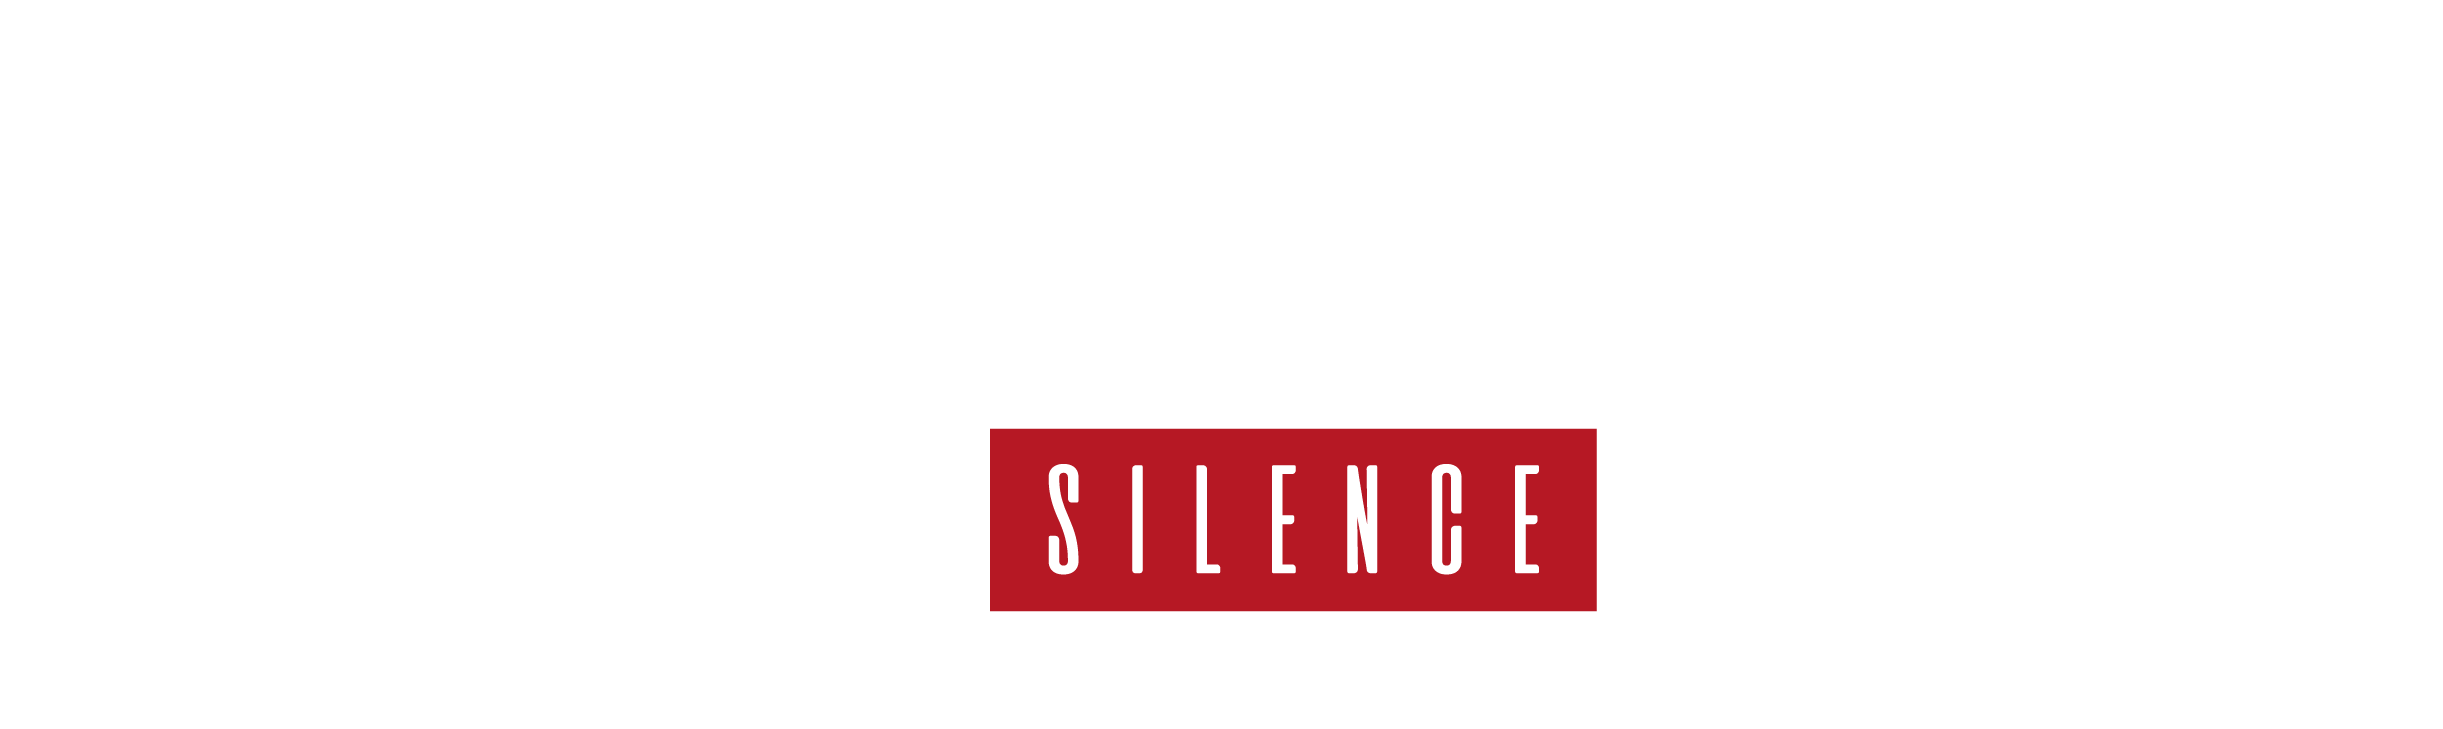 Orion Wide Silence